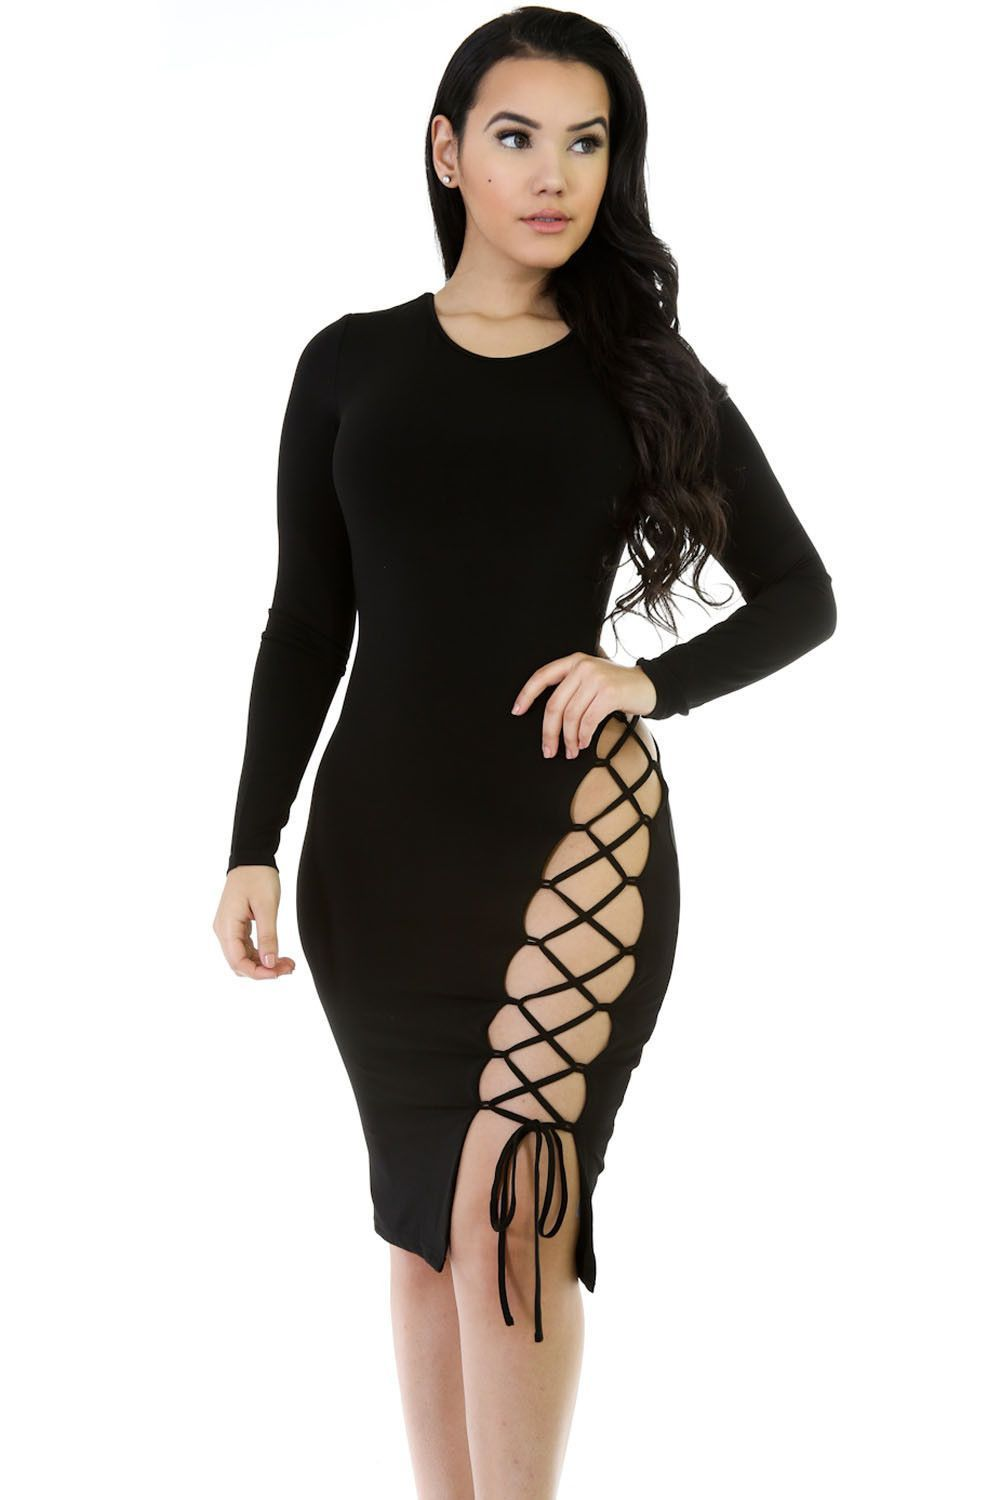 9e3b56a148 Black Laced up Bodycon Dress https   www.modeshe.com  modeshe